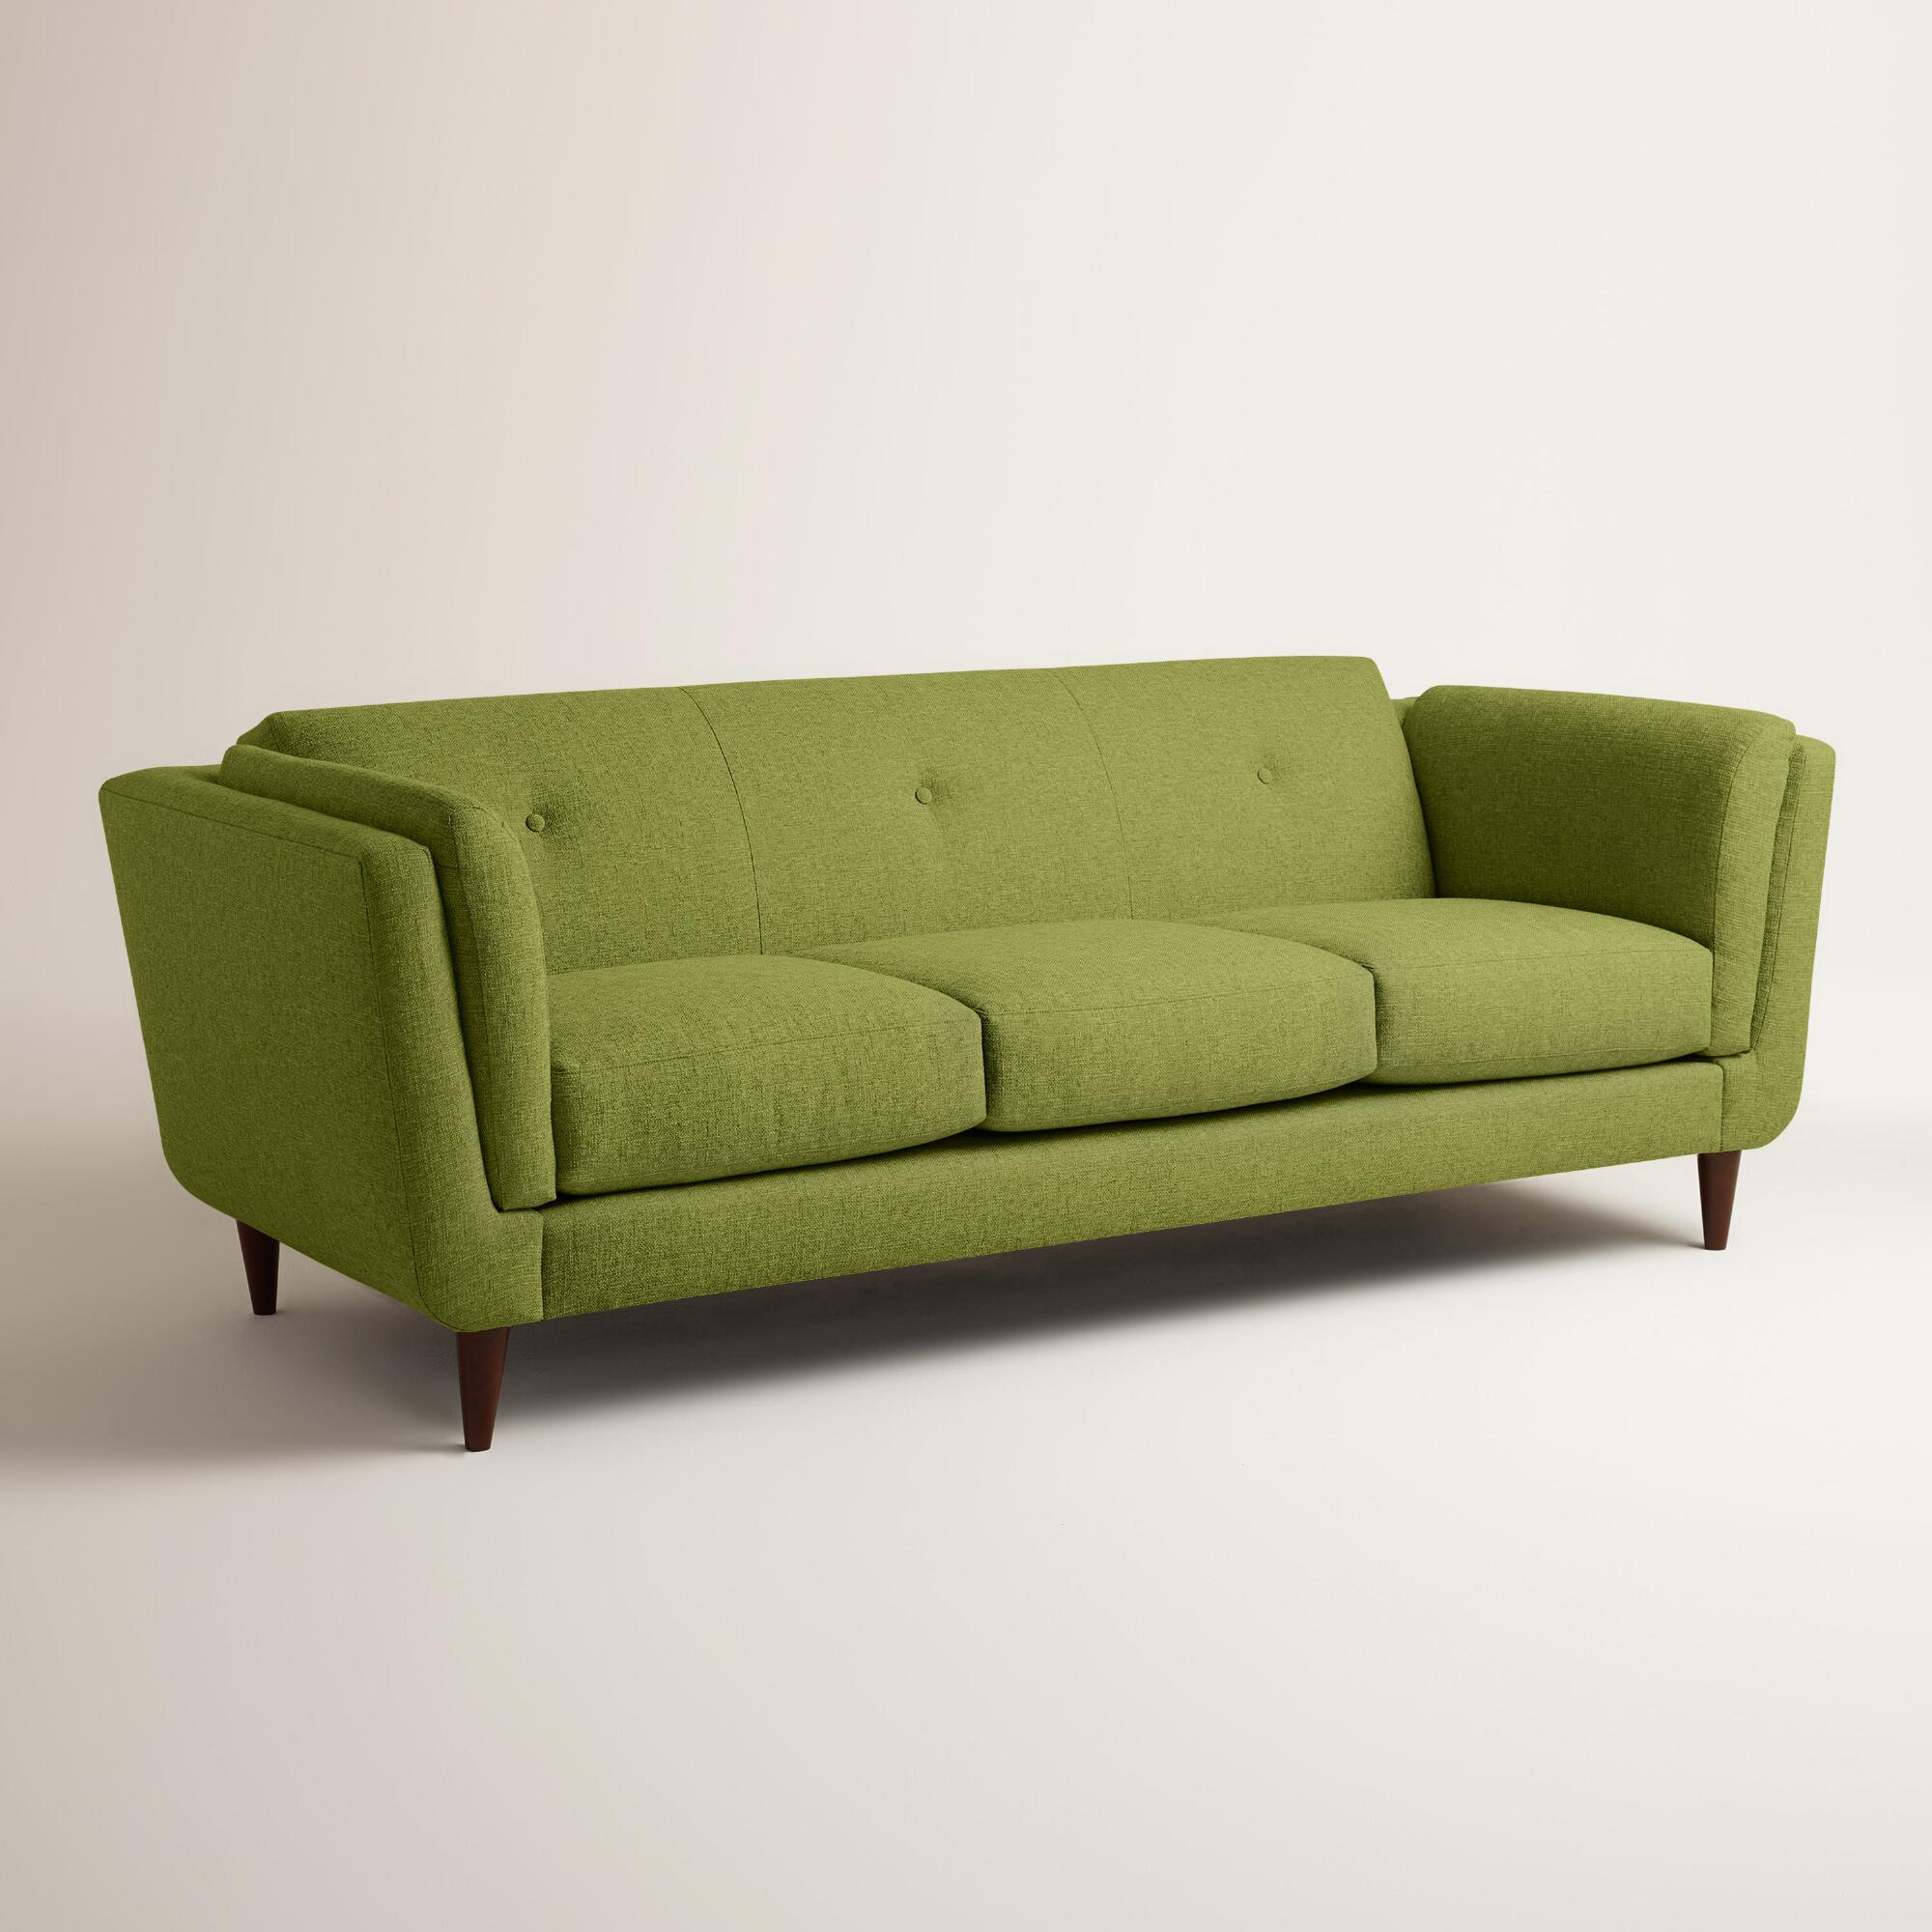 Chunky woven reza upholstered sofa world market Couches and loveseats